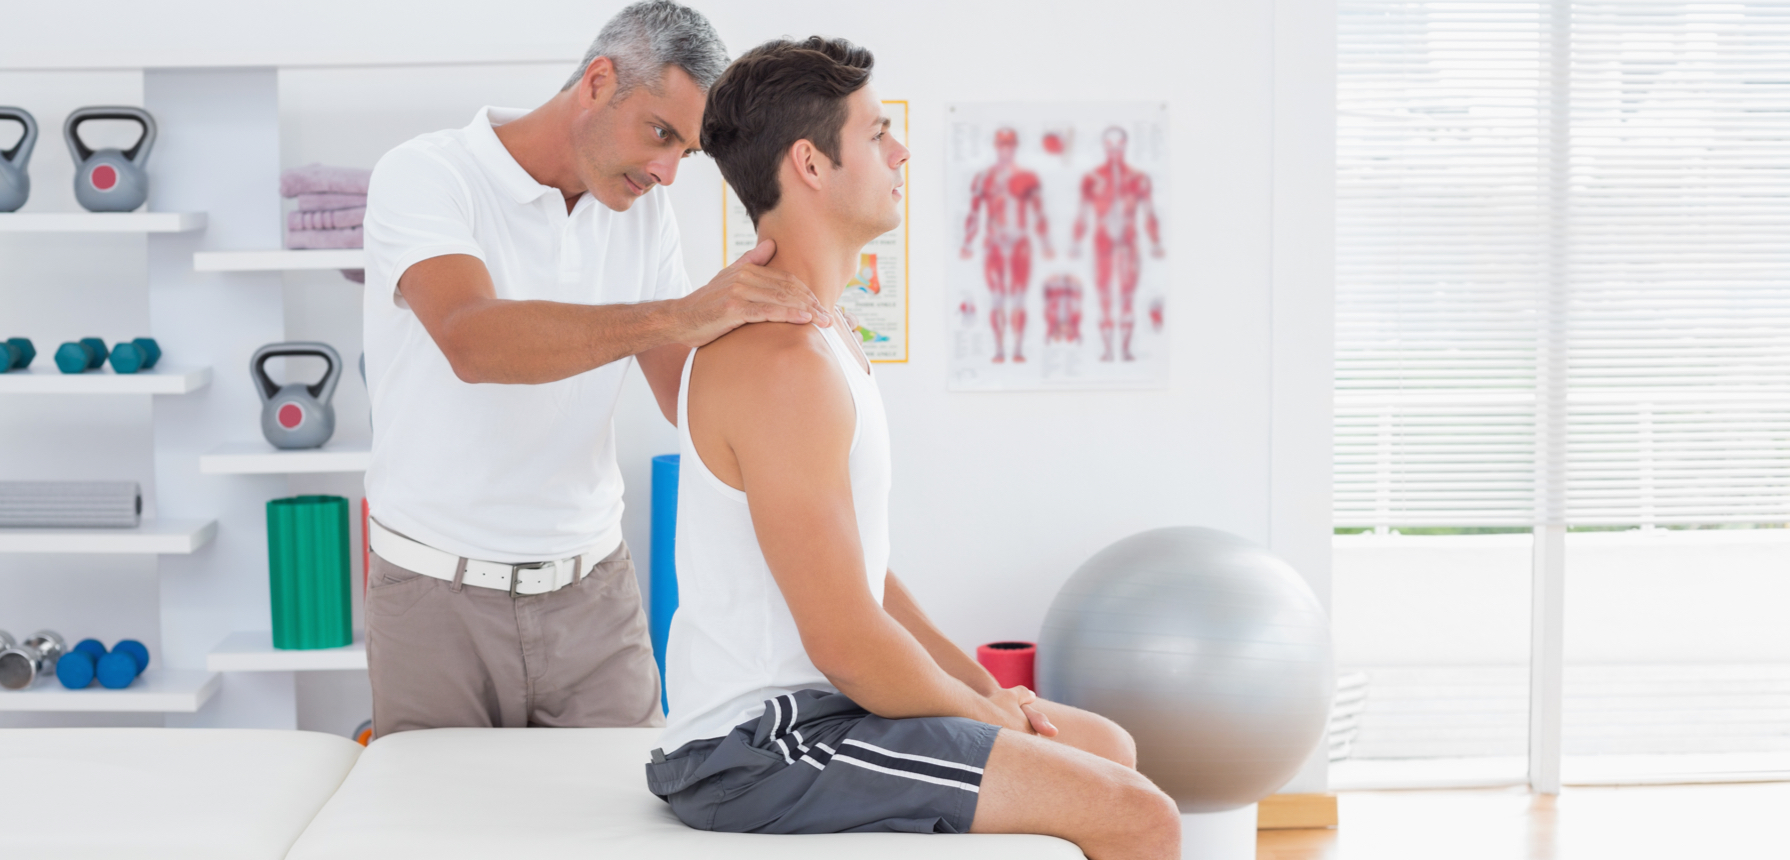 chiropractor helping client with Neck pain